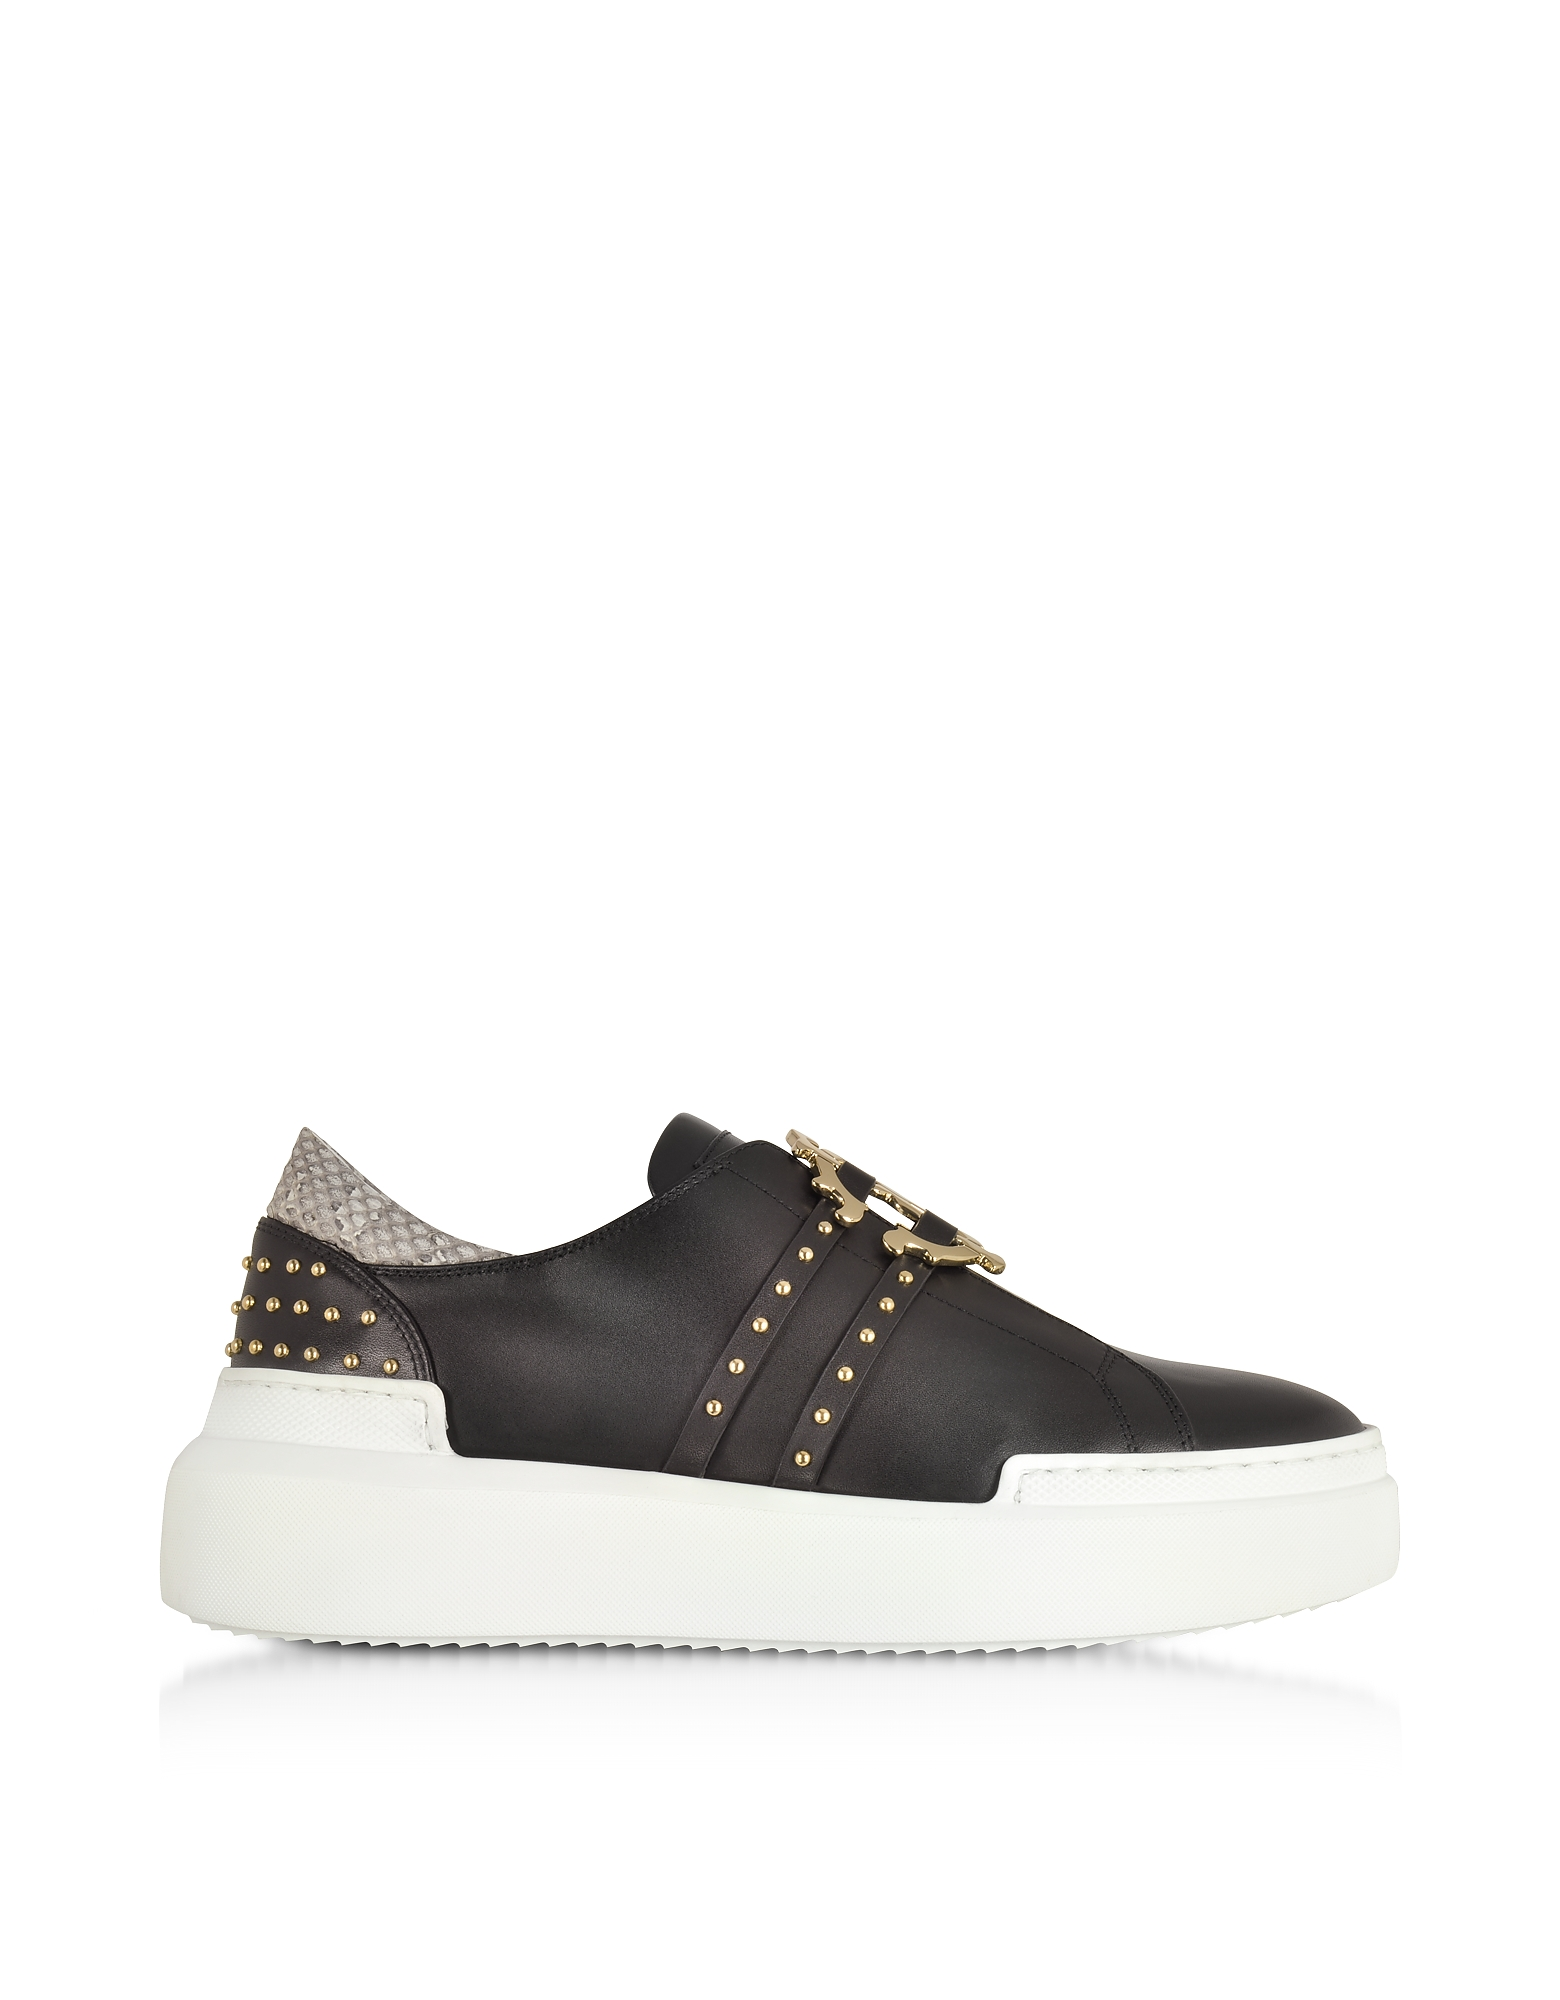 Roberto Cavalli Shoes, Black Signature Slip on Sneakers w/Studs